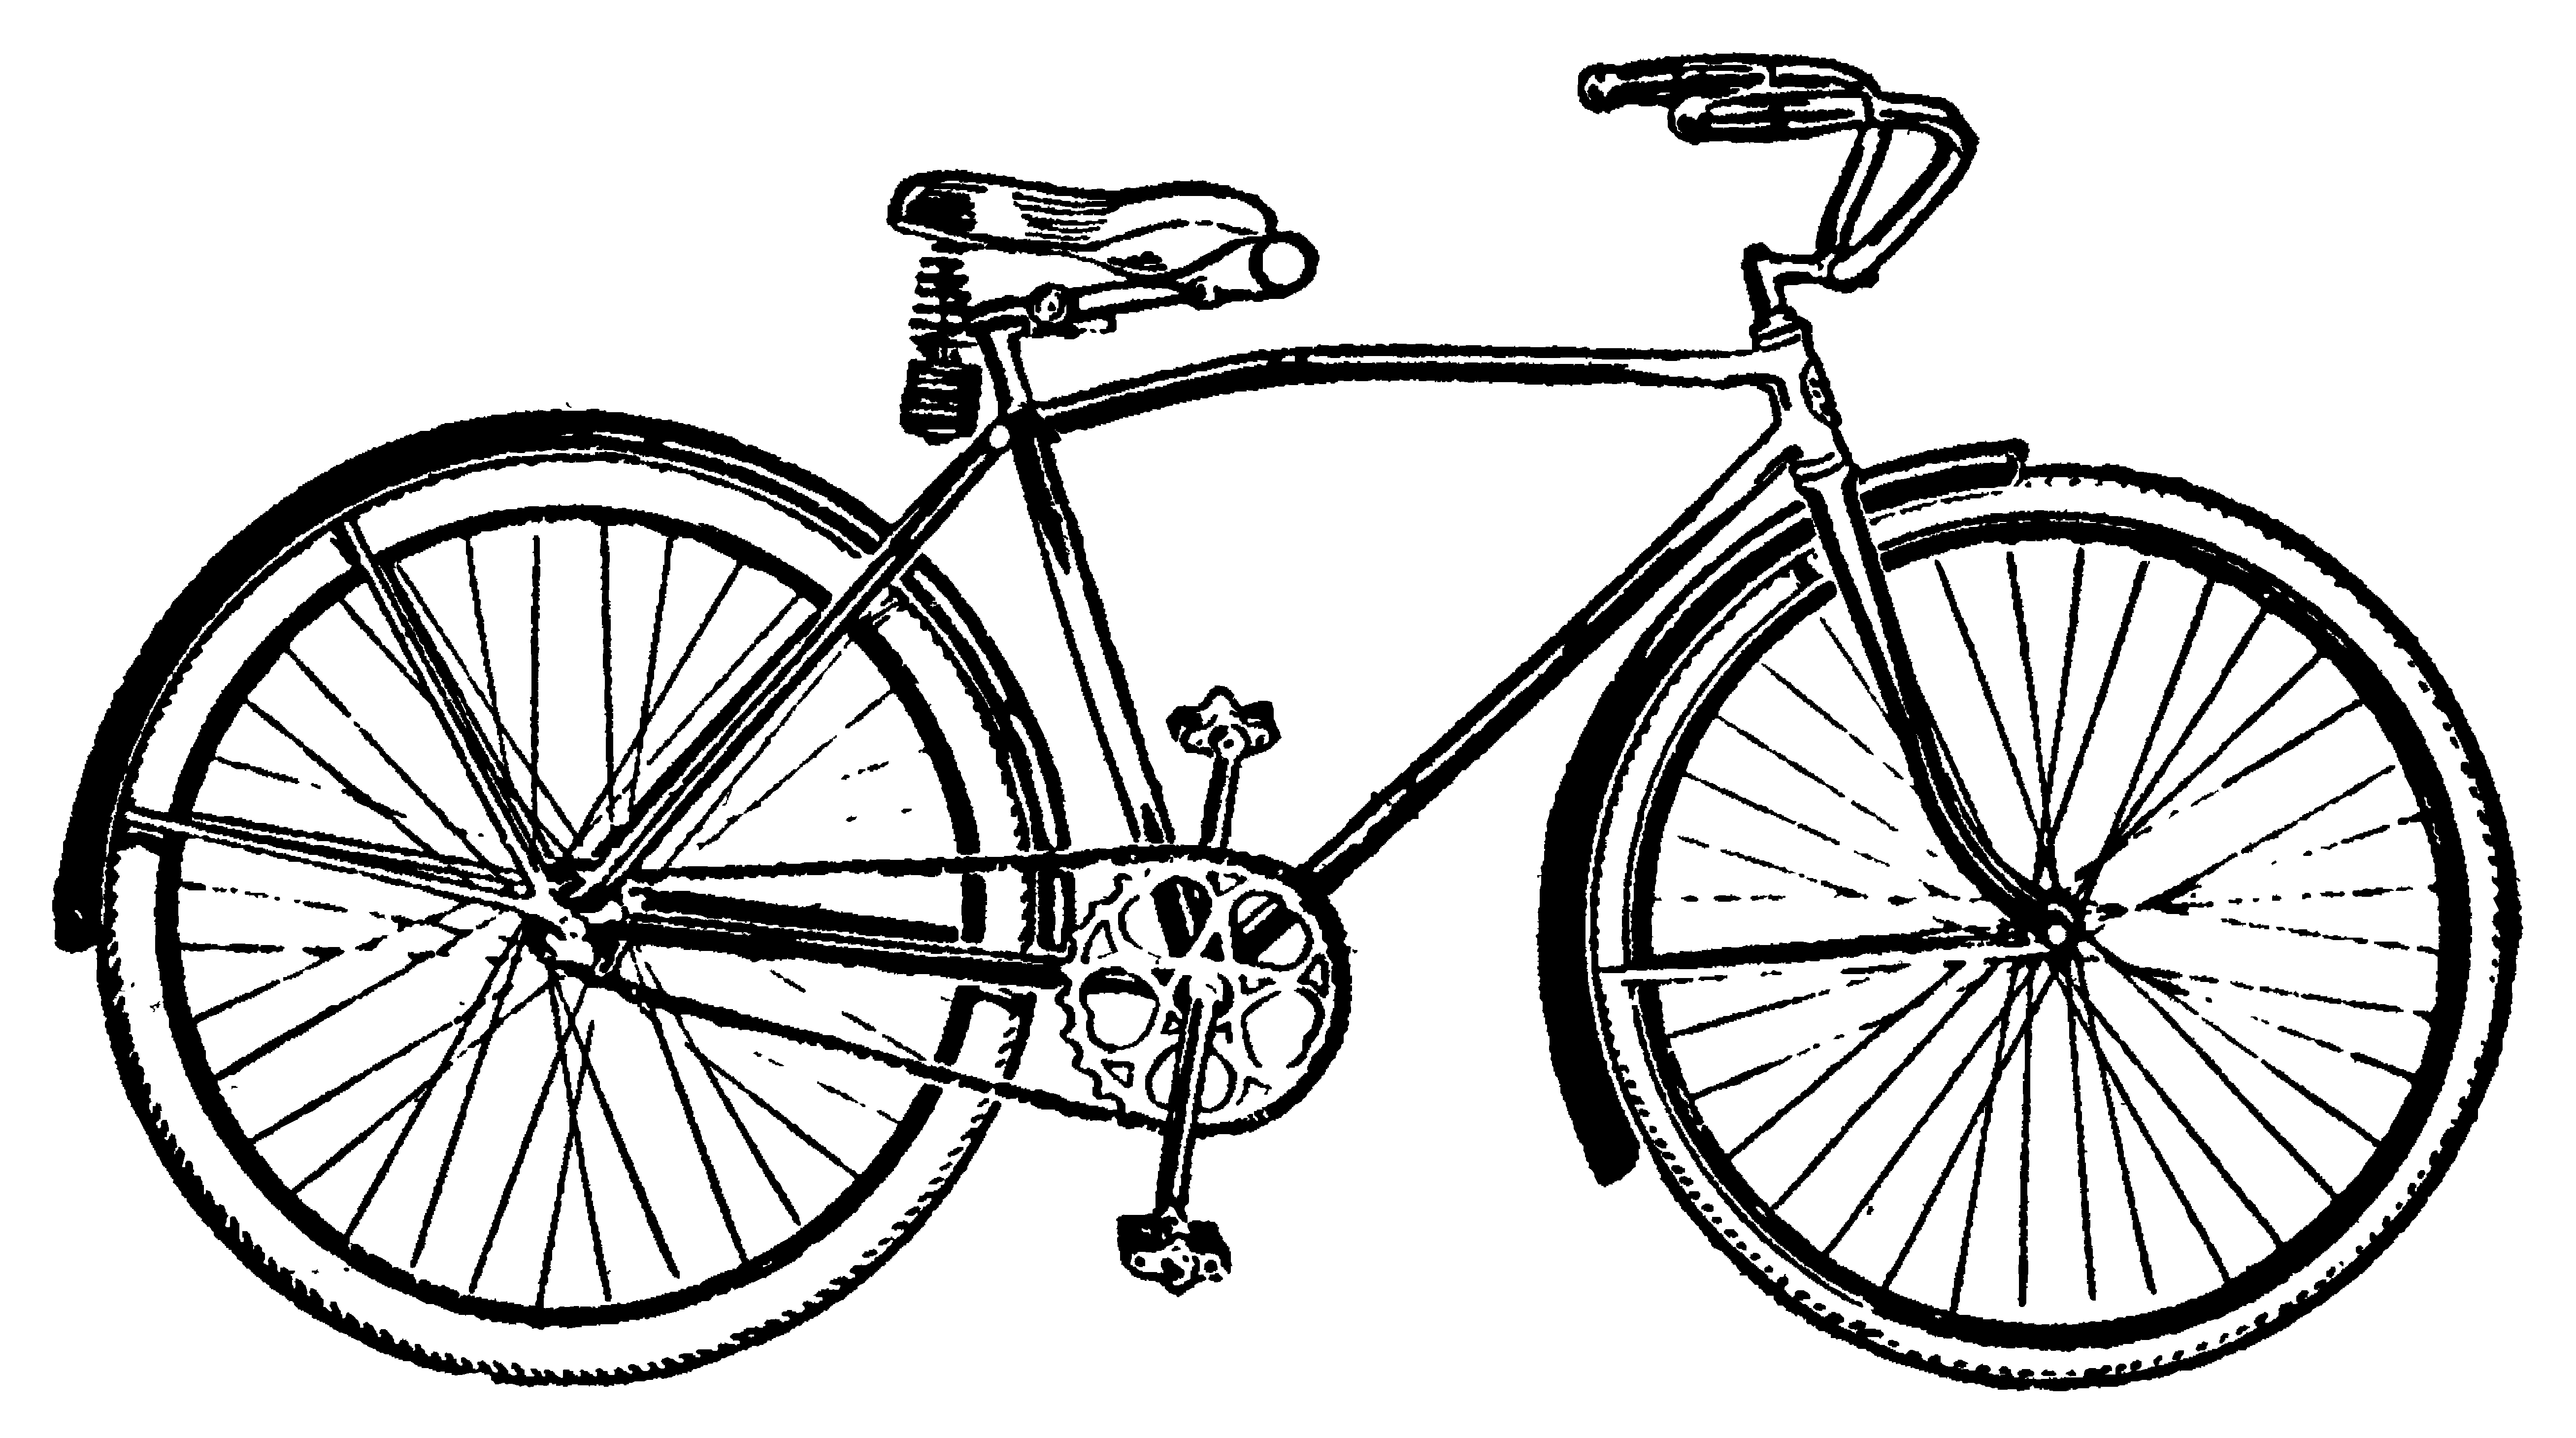 Bicycle drawing at getdrawings. Cycle clipart antique bike png library library